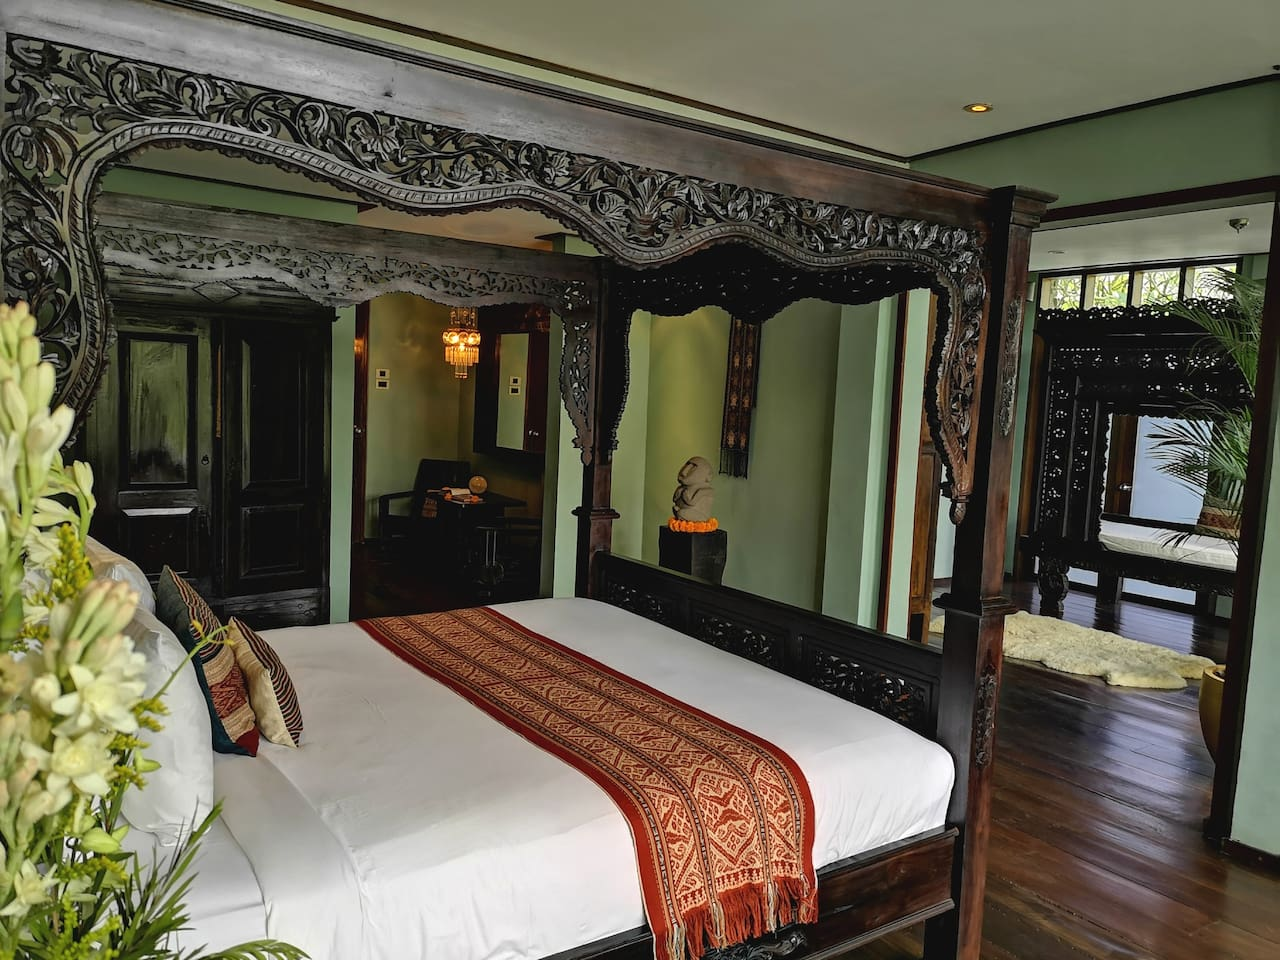 Antique Balinese handcarved bed, with Italian Mattress and heirloom quality textiles. Details & crystals.